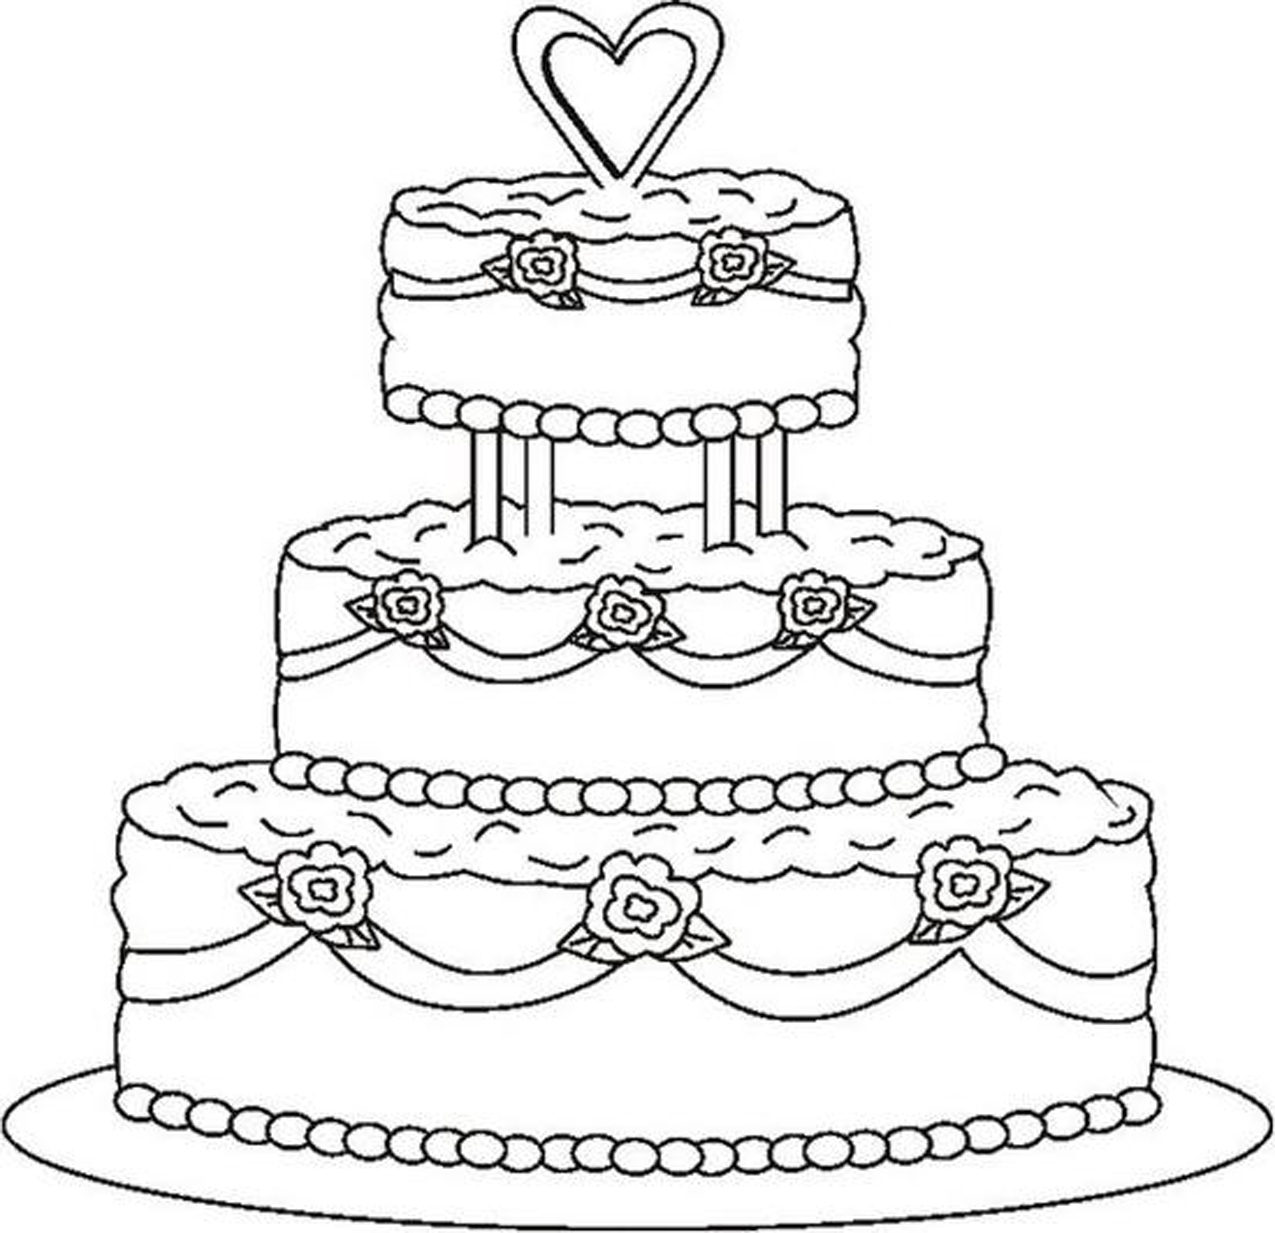 Baked goods clipart drawing. Of a wedding cake